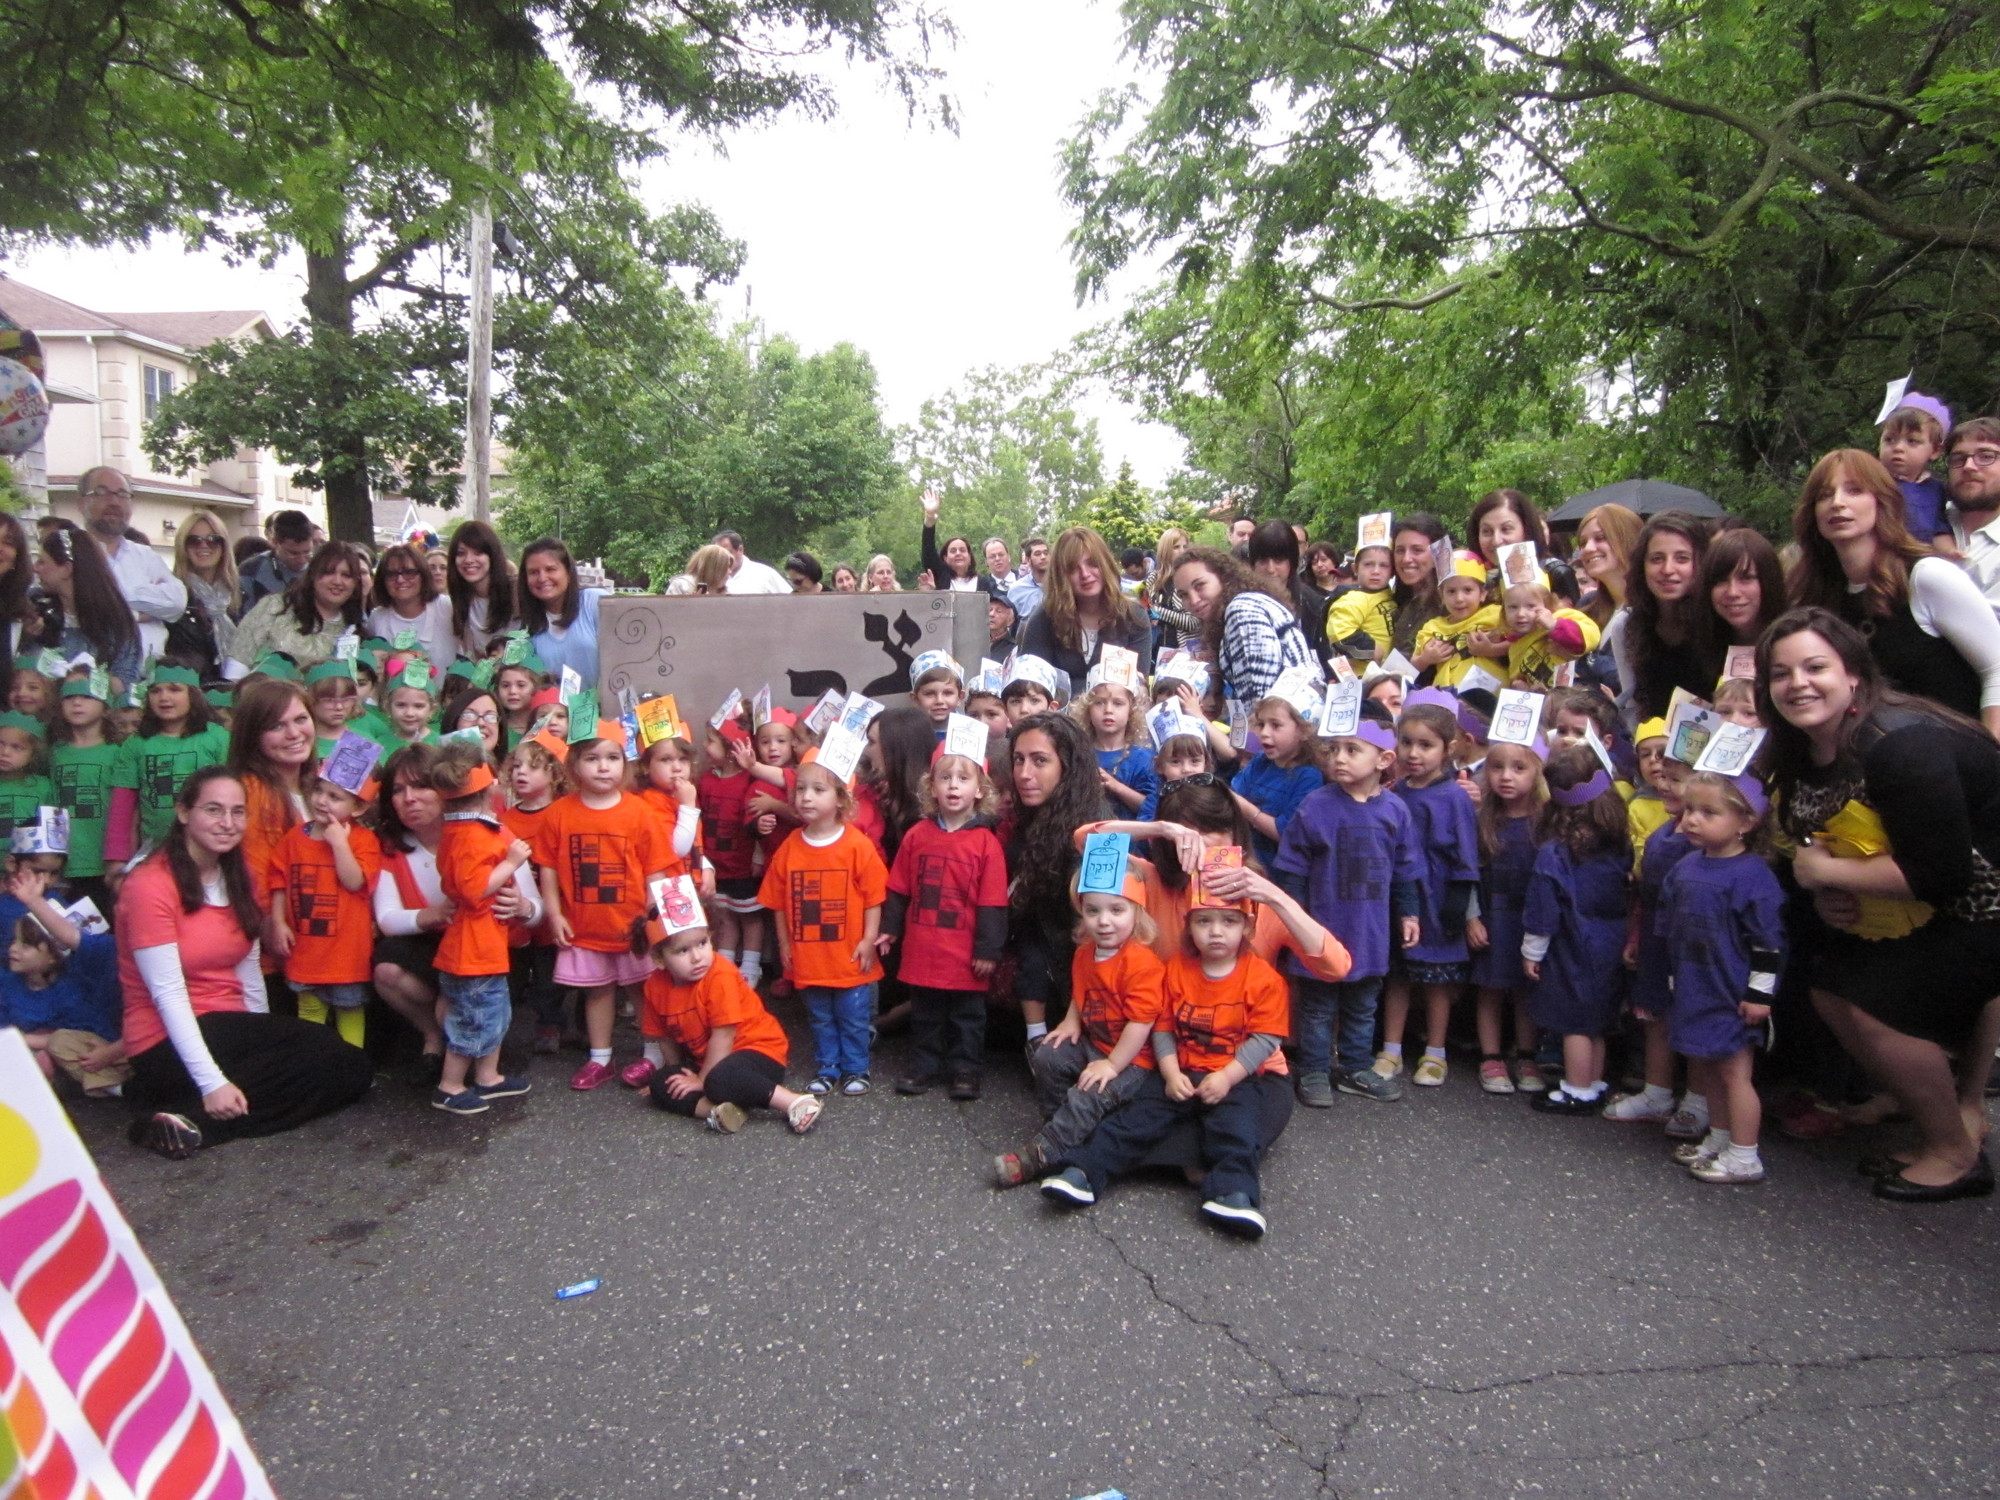 Chabad preschool students celebrated their graduation with a march in Maple Avenue and donating to Hatzalah.